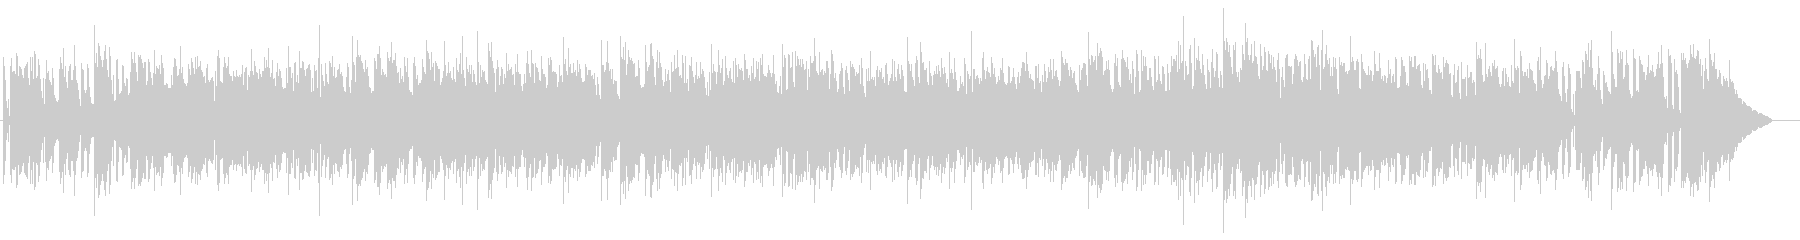 Sometimes like a girl without a mother (guitar)'s unreproduced waveform